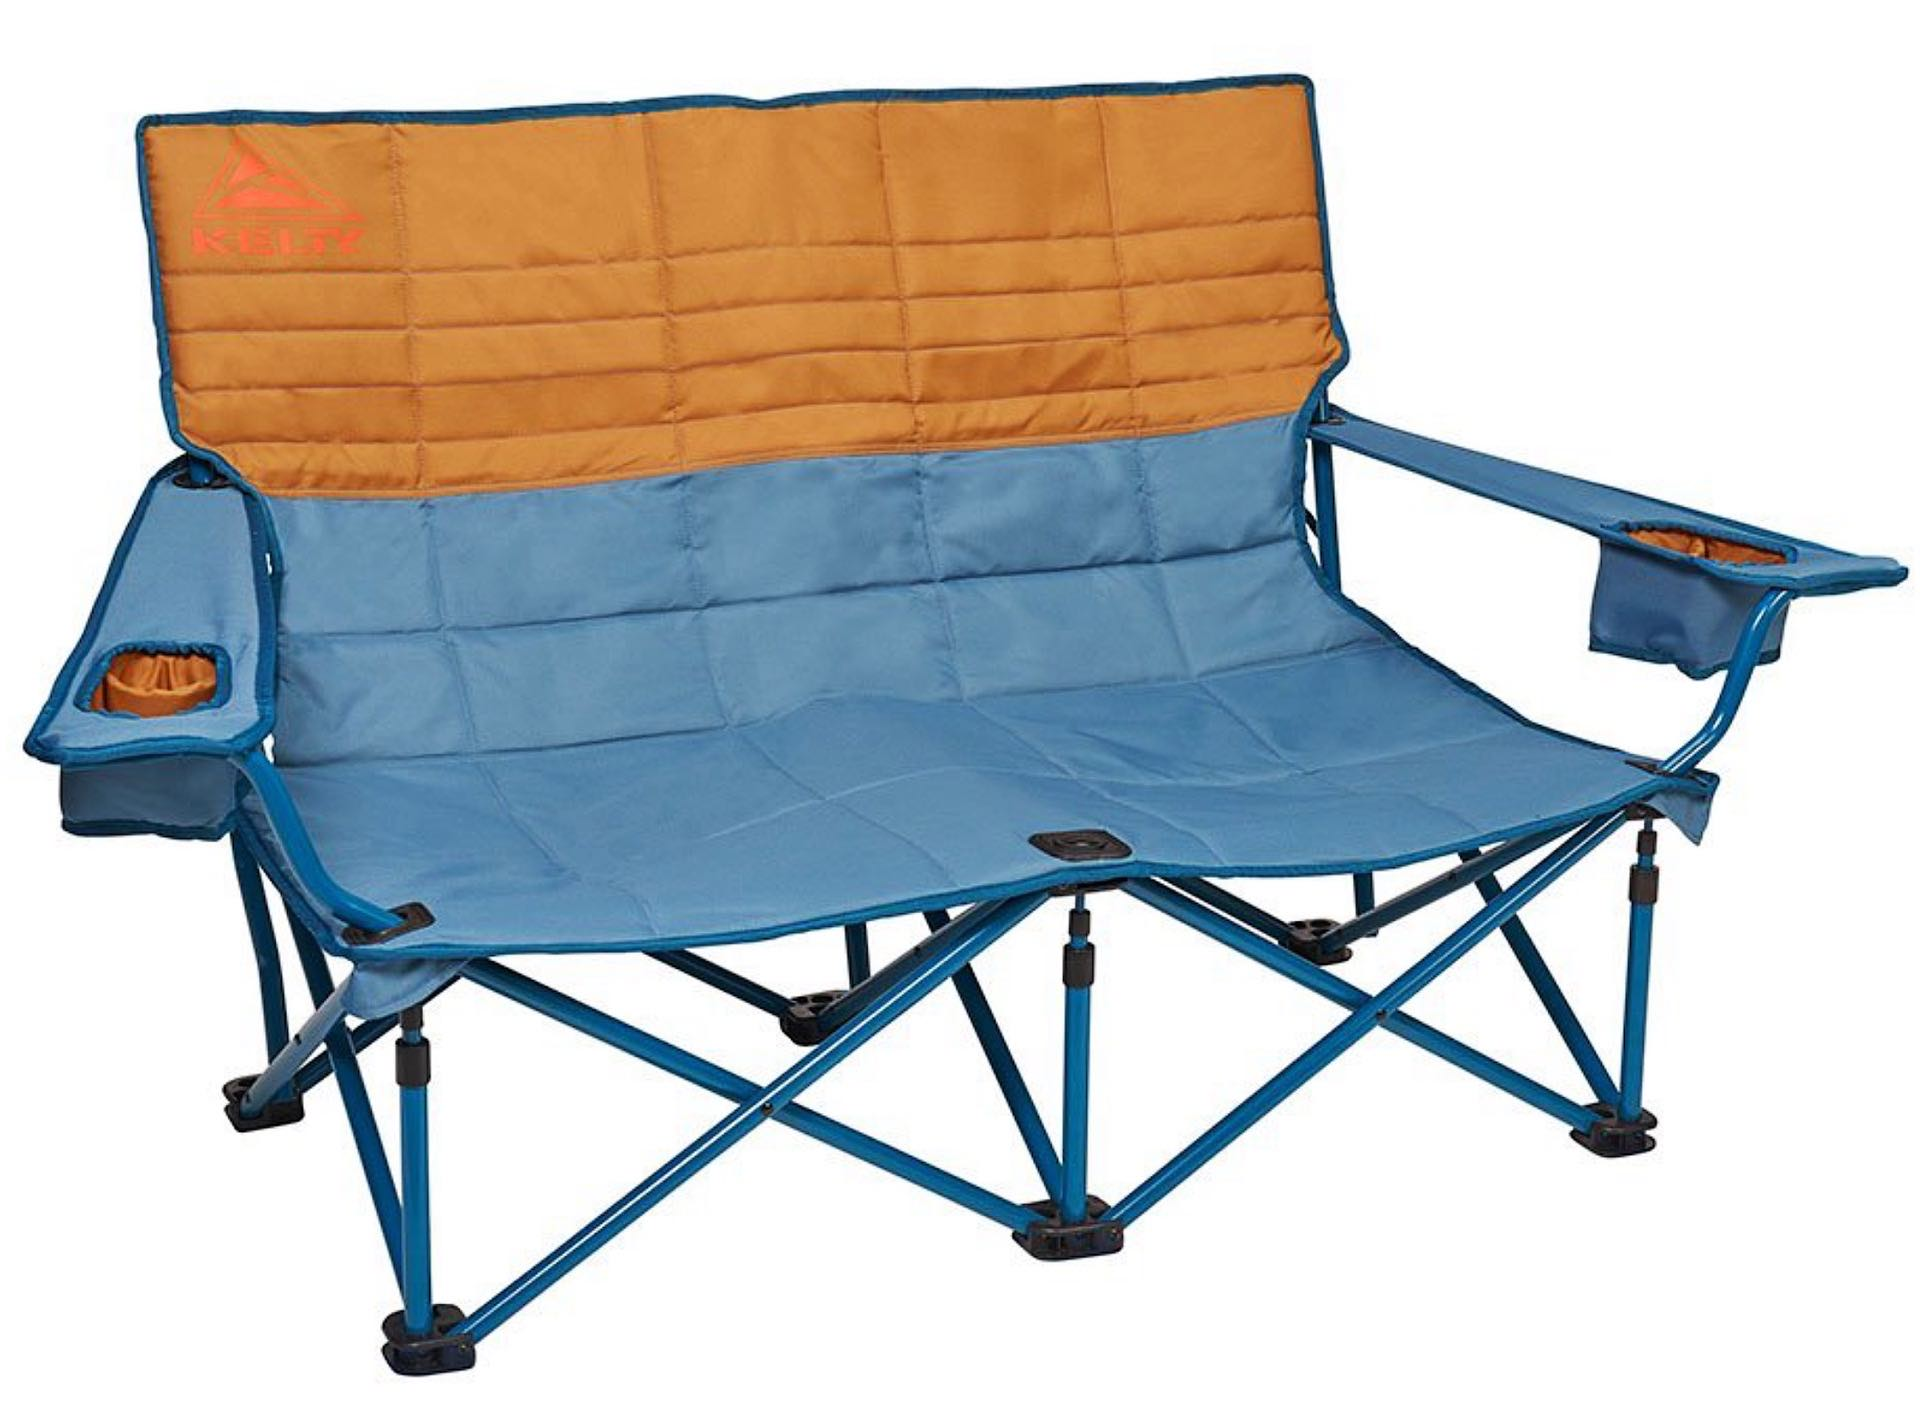 kelty-low-loveseat-camping-chair